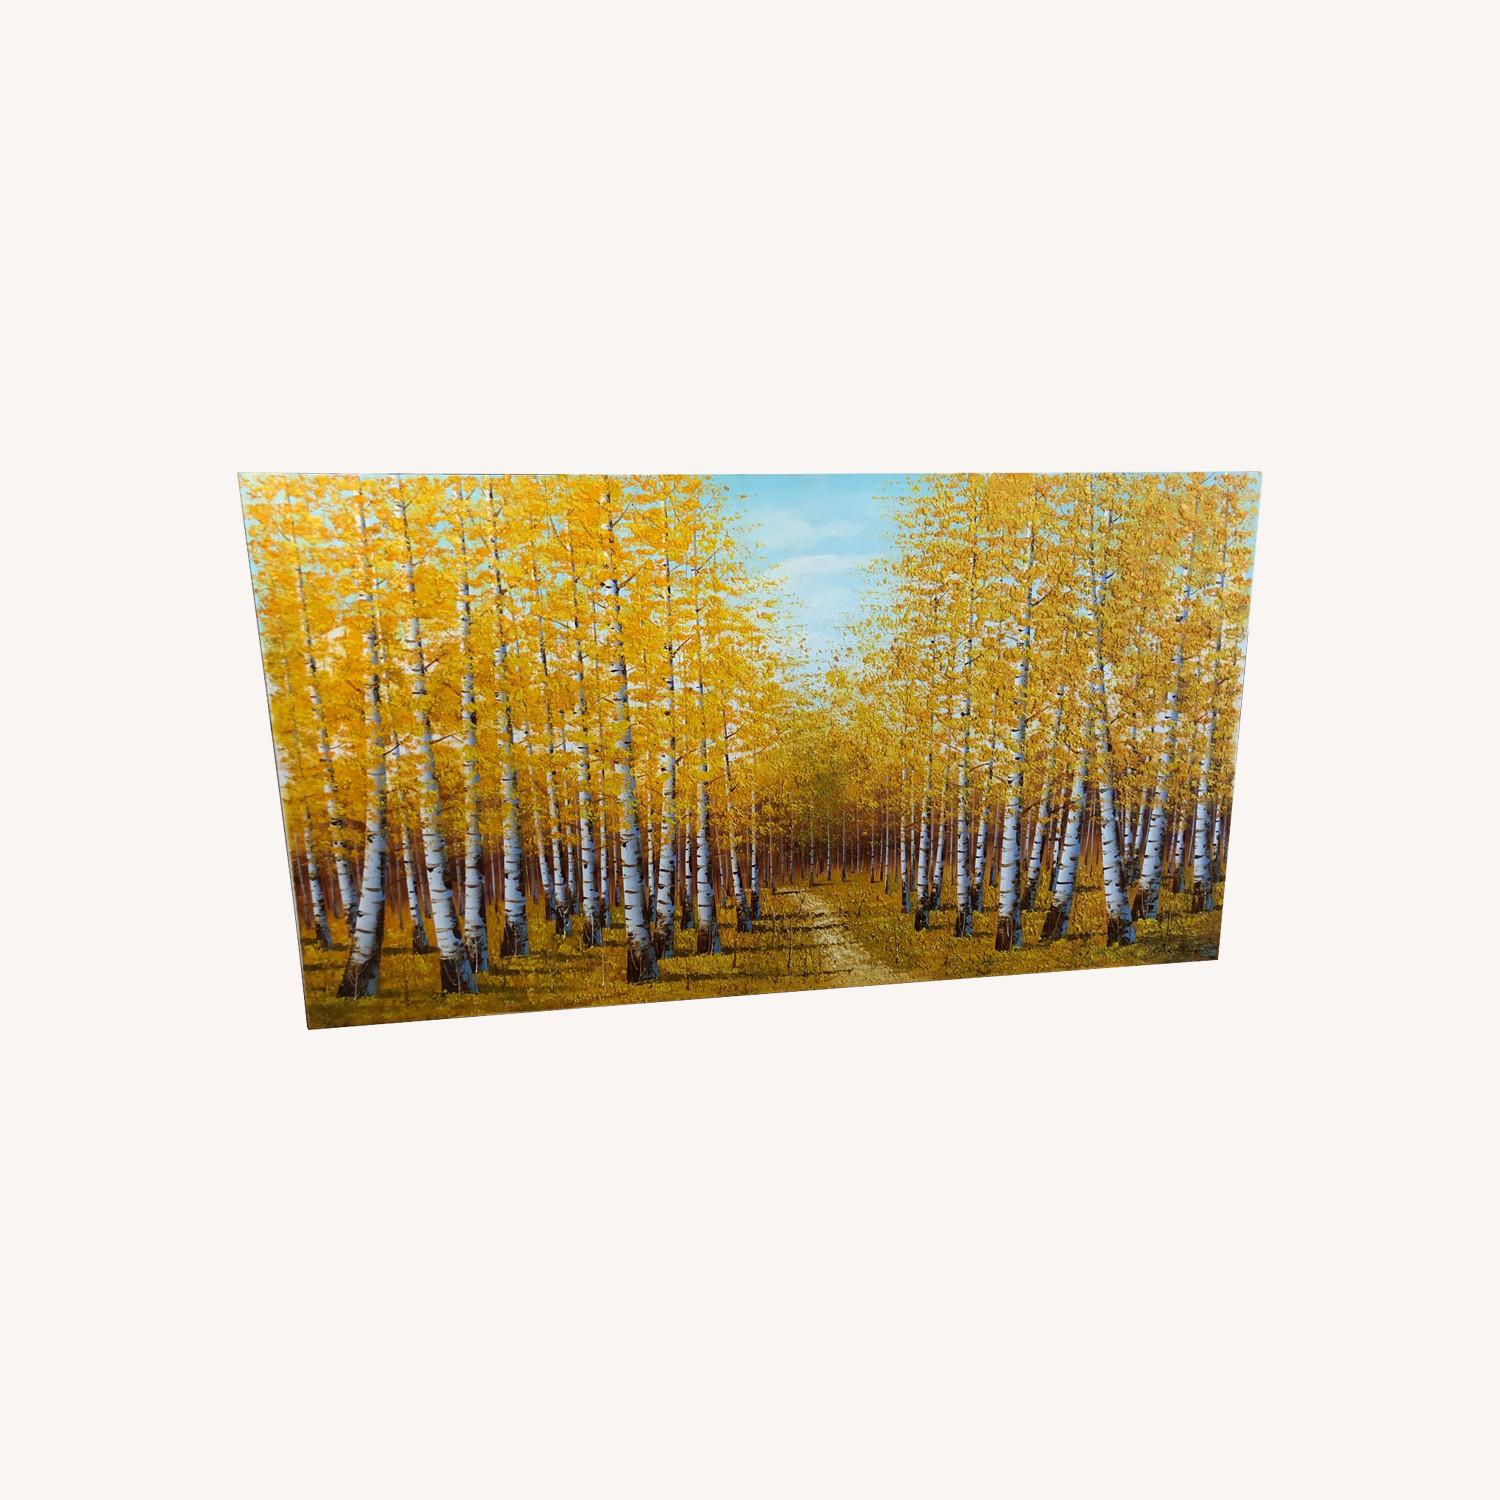 Autumn Bamboo Forest Painting on Canvas - image-0